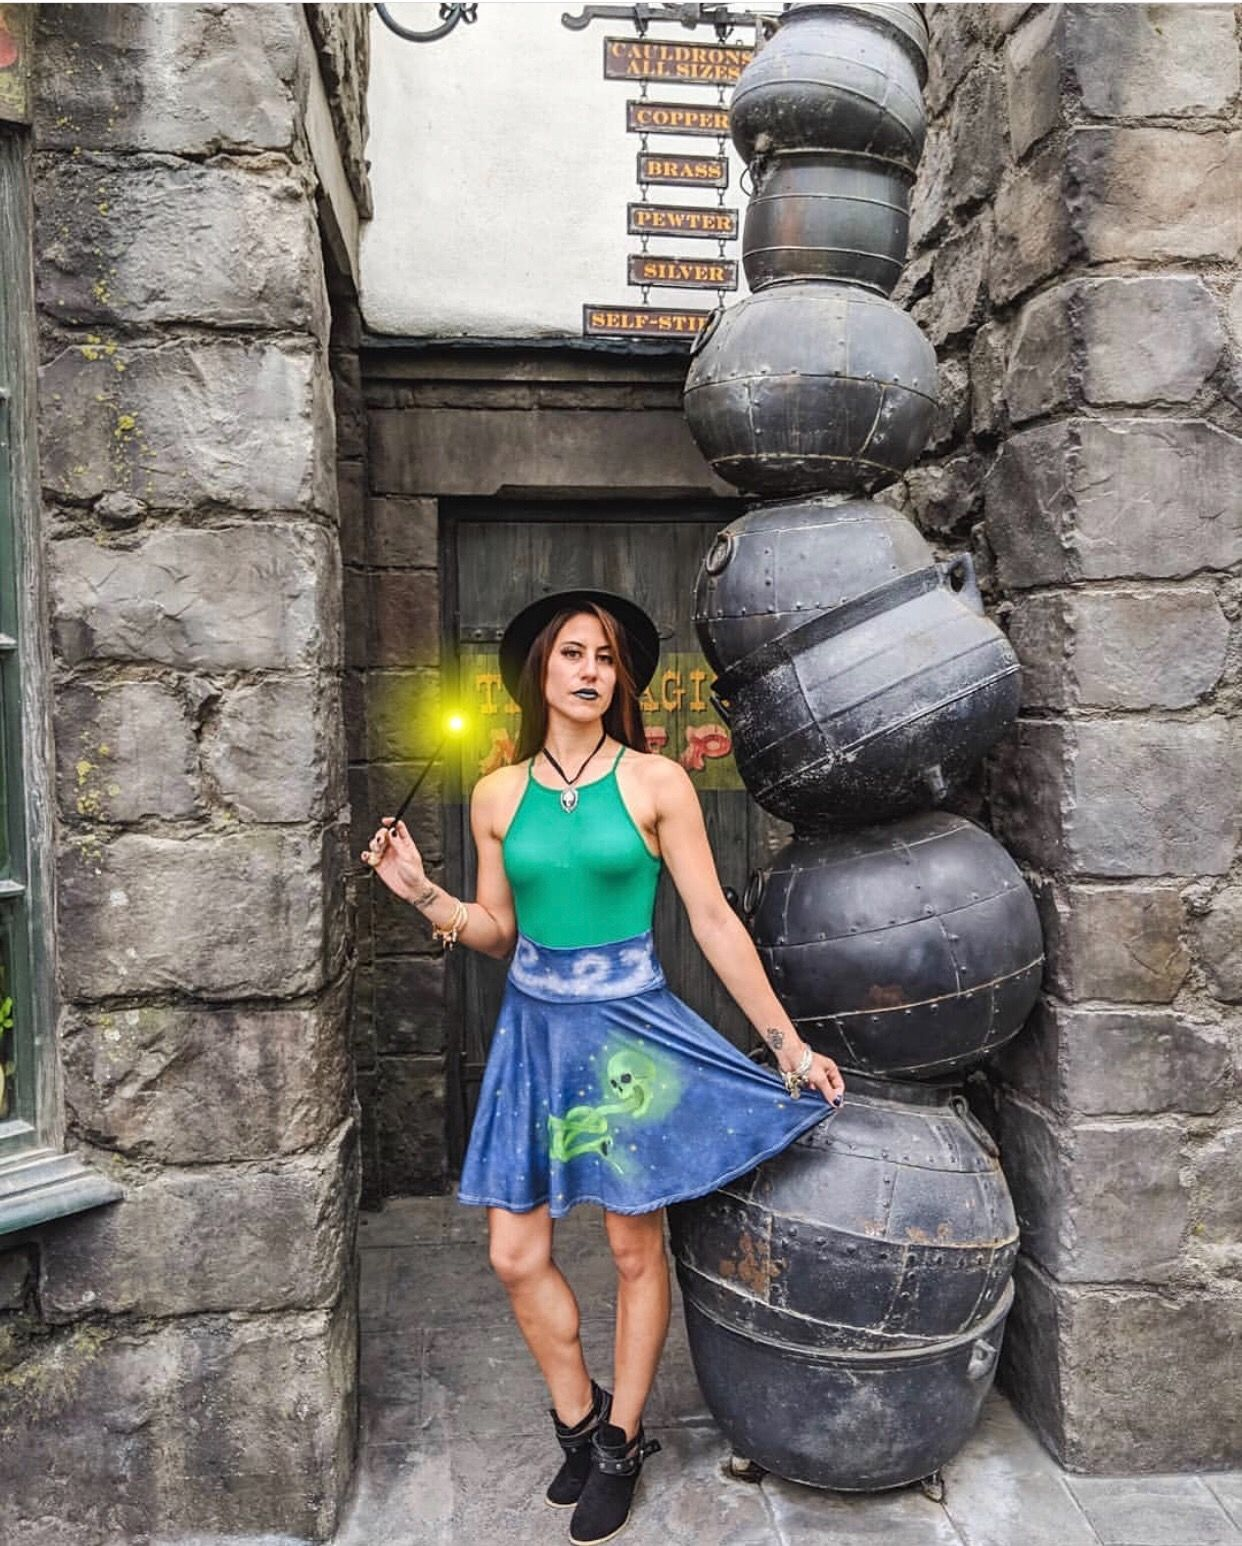 8623b216c6 12 Harry Potter Outfits for the Wizarding World of Harry Potter – Fandom  Fashionista